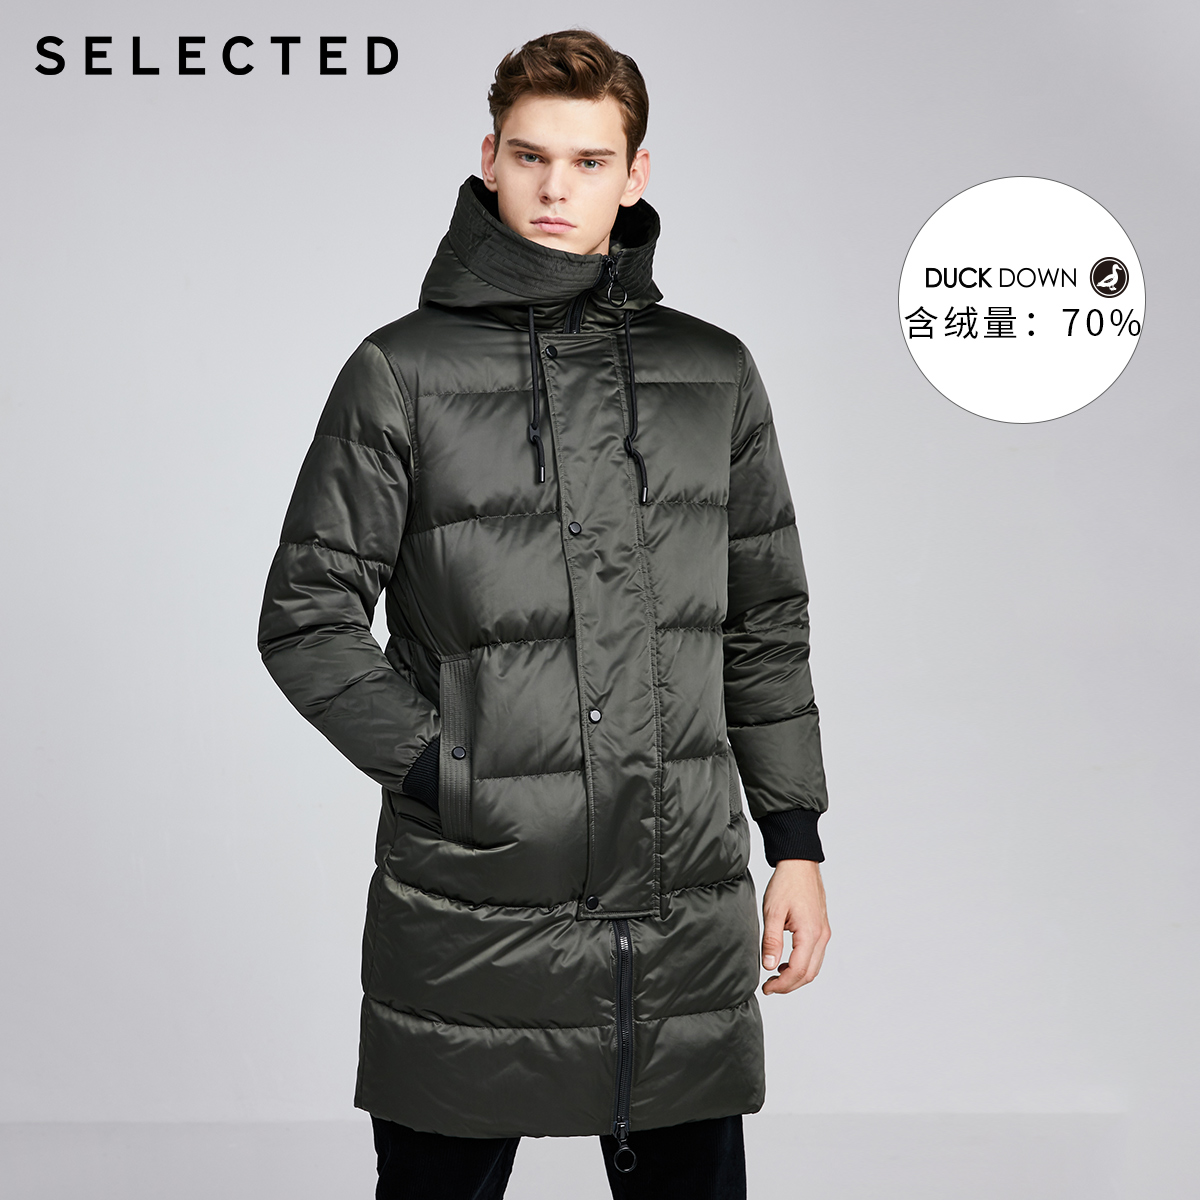 SELECTED Men's Winter Parka Coat Mid-length Hooded Clothes Hooded Duck Down Jacket S|419412581